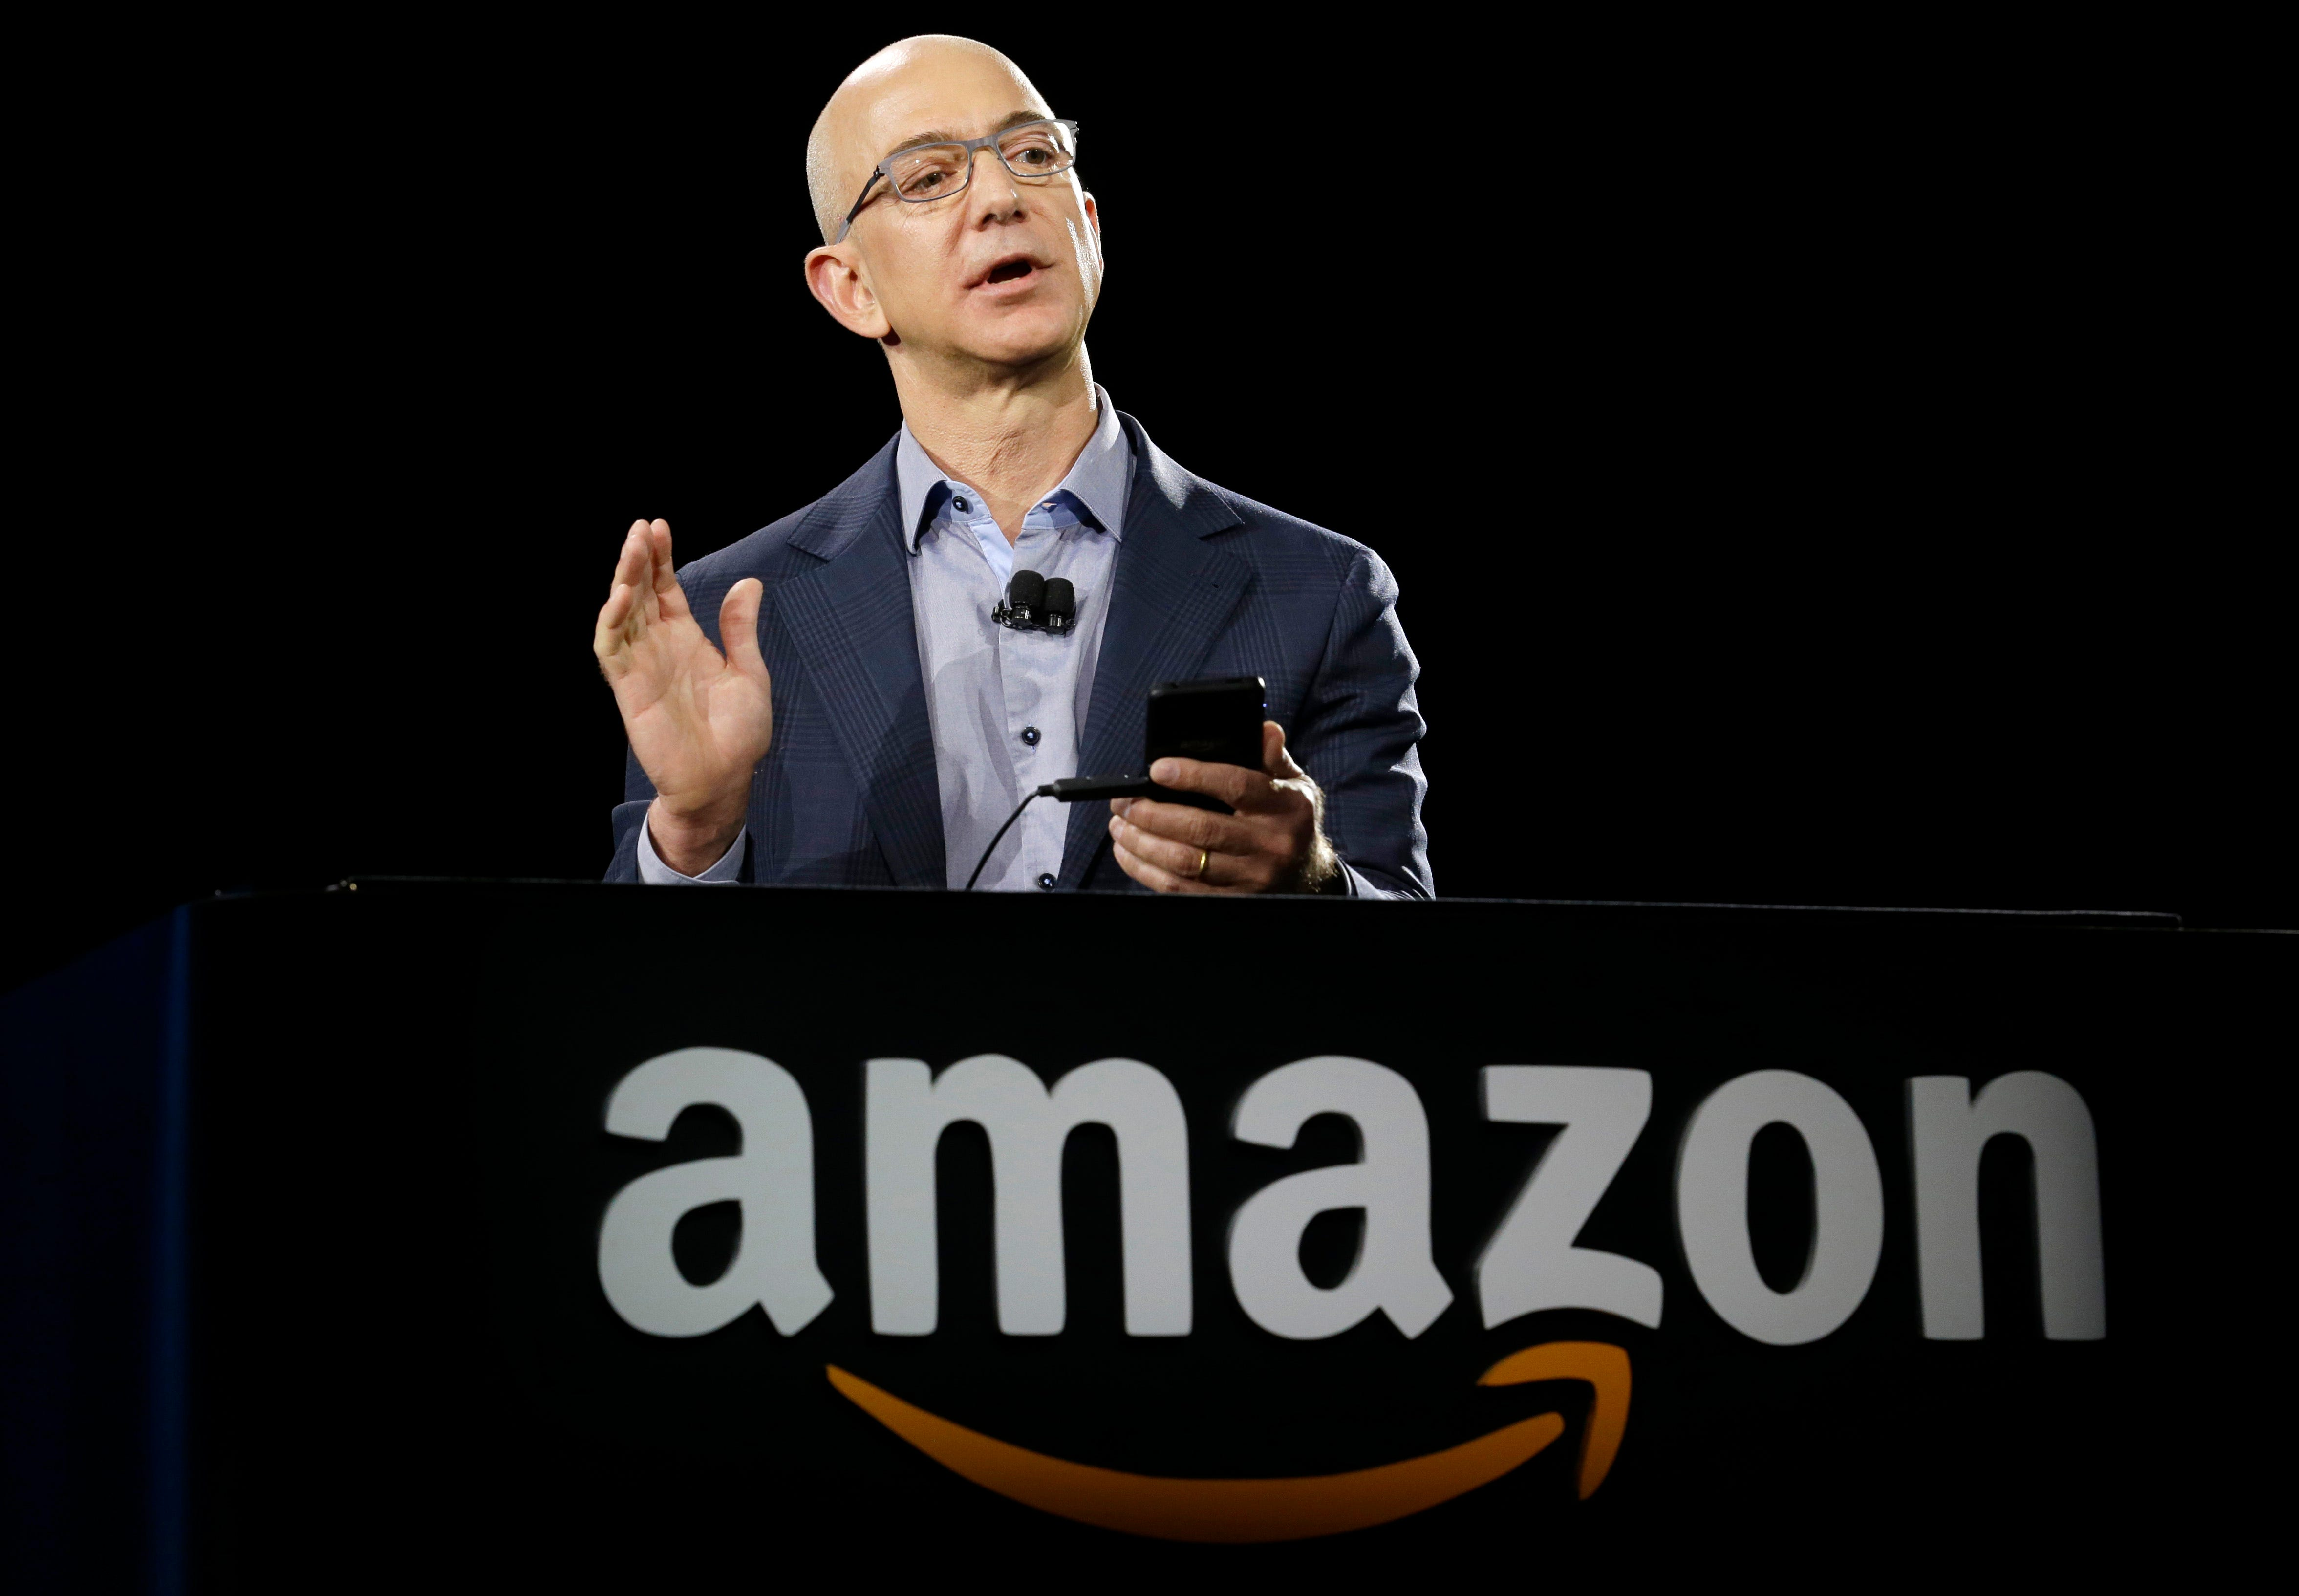 Amazon's second headquarters: The pros and cons of the finalists